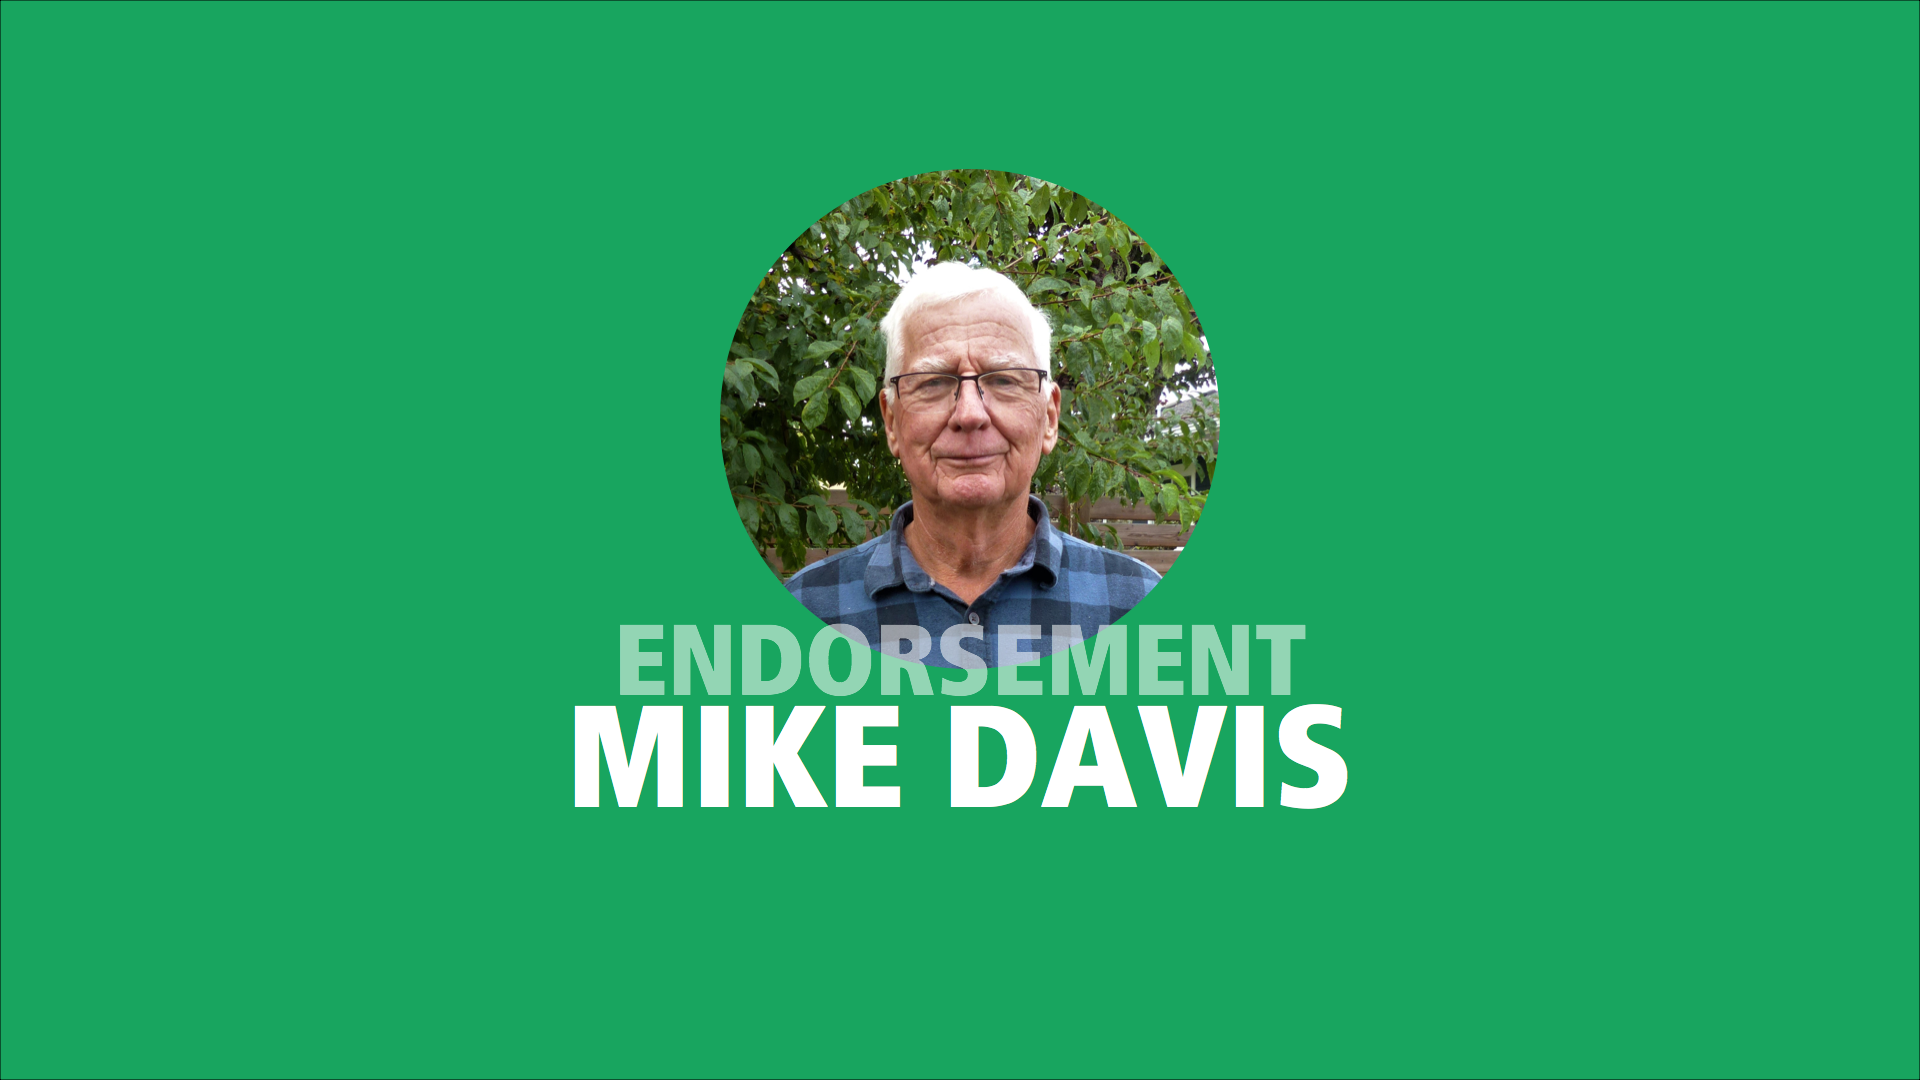 Mike Davis endorses Adam Olsen